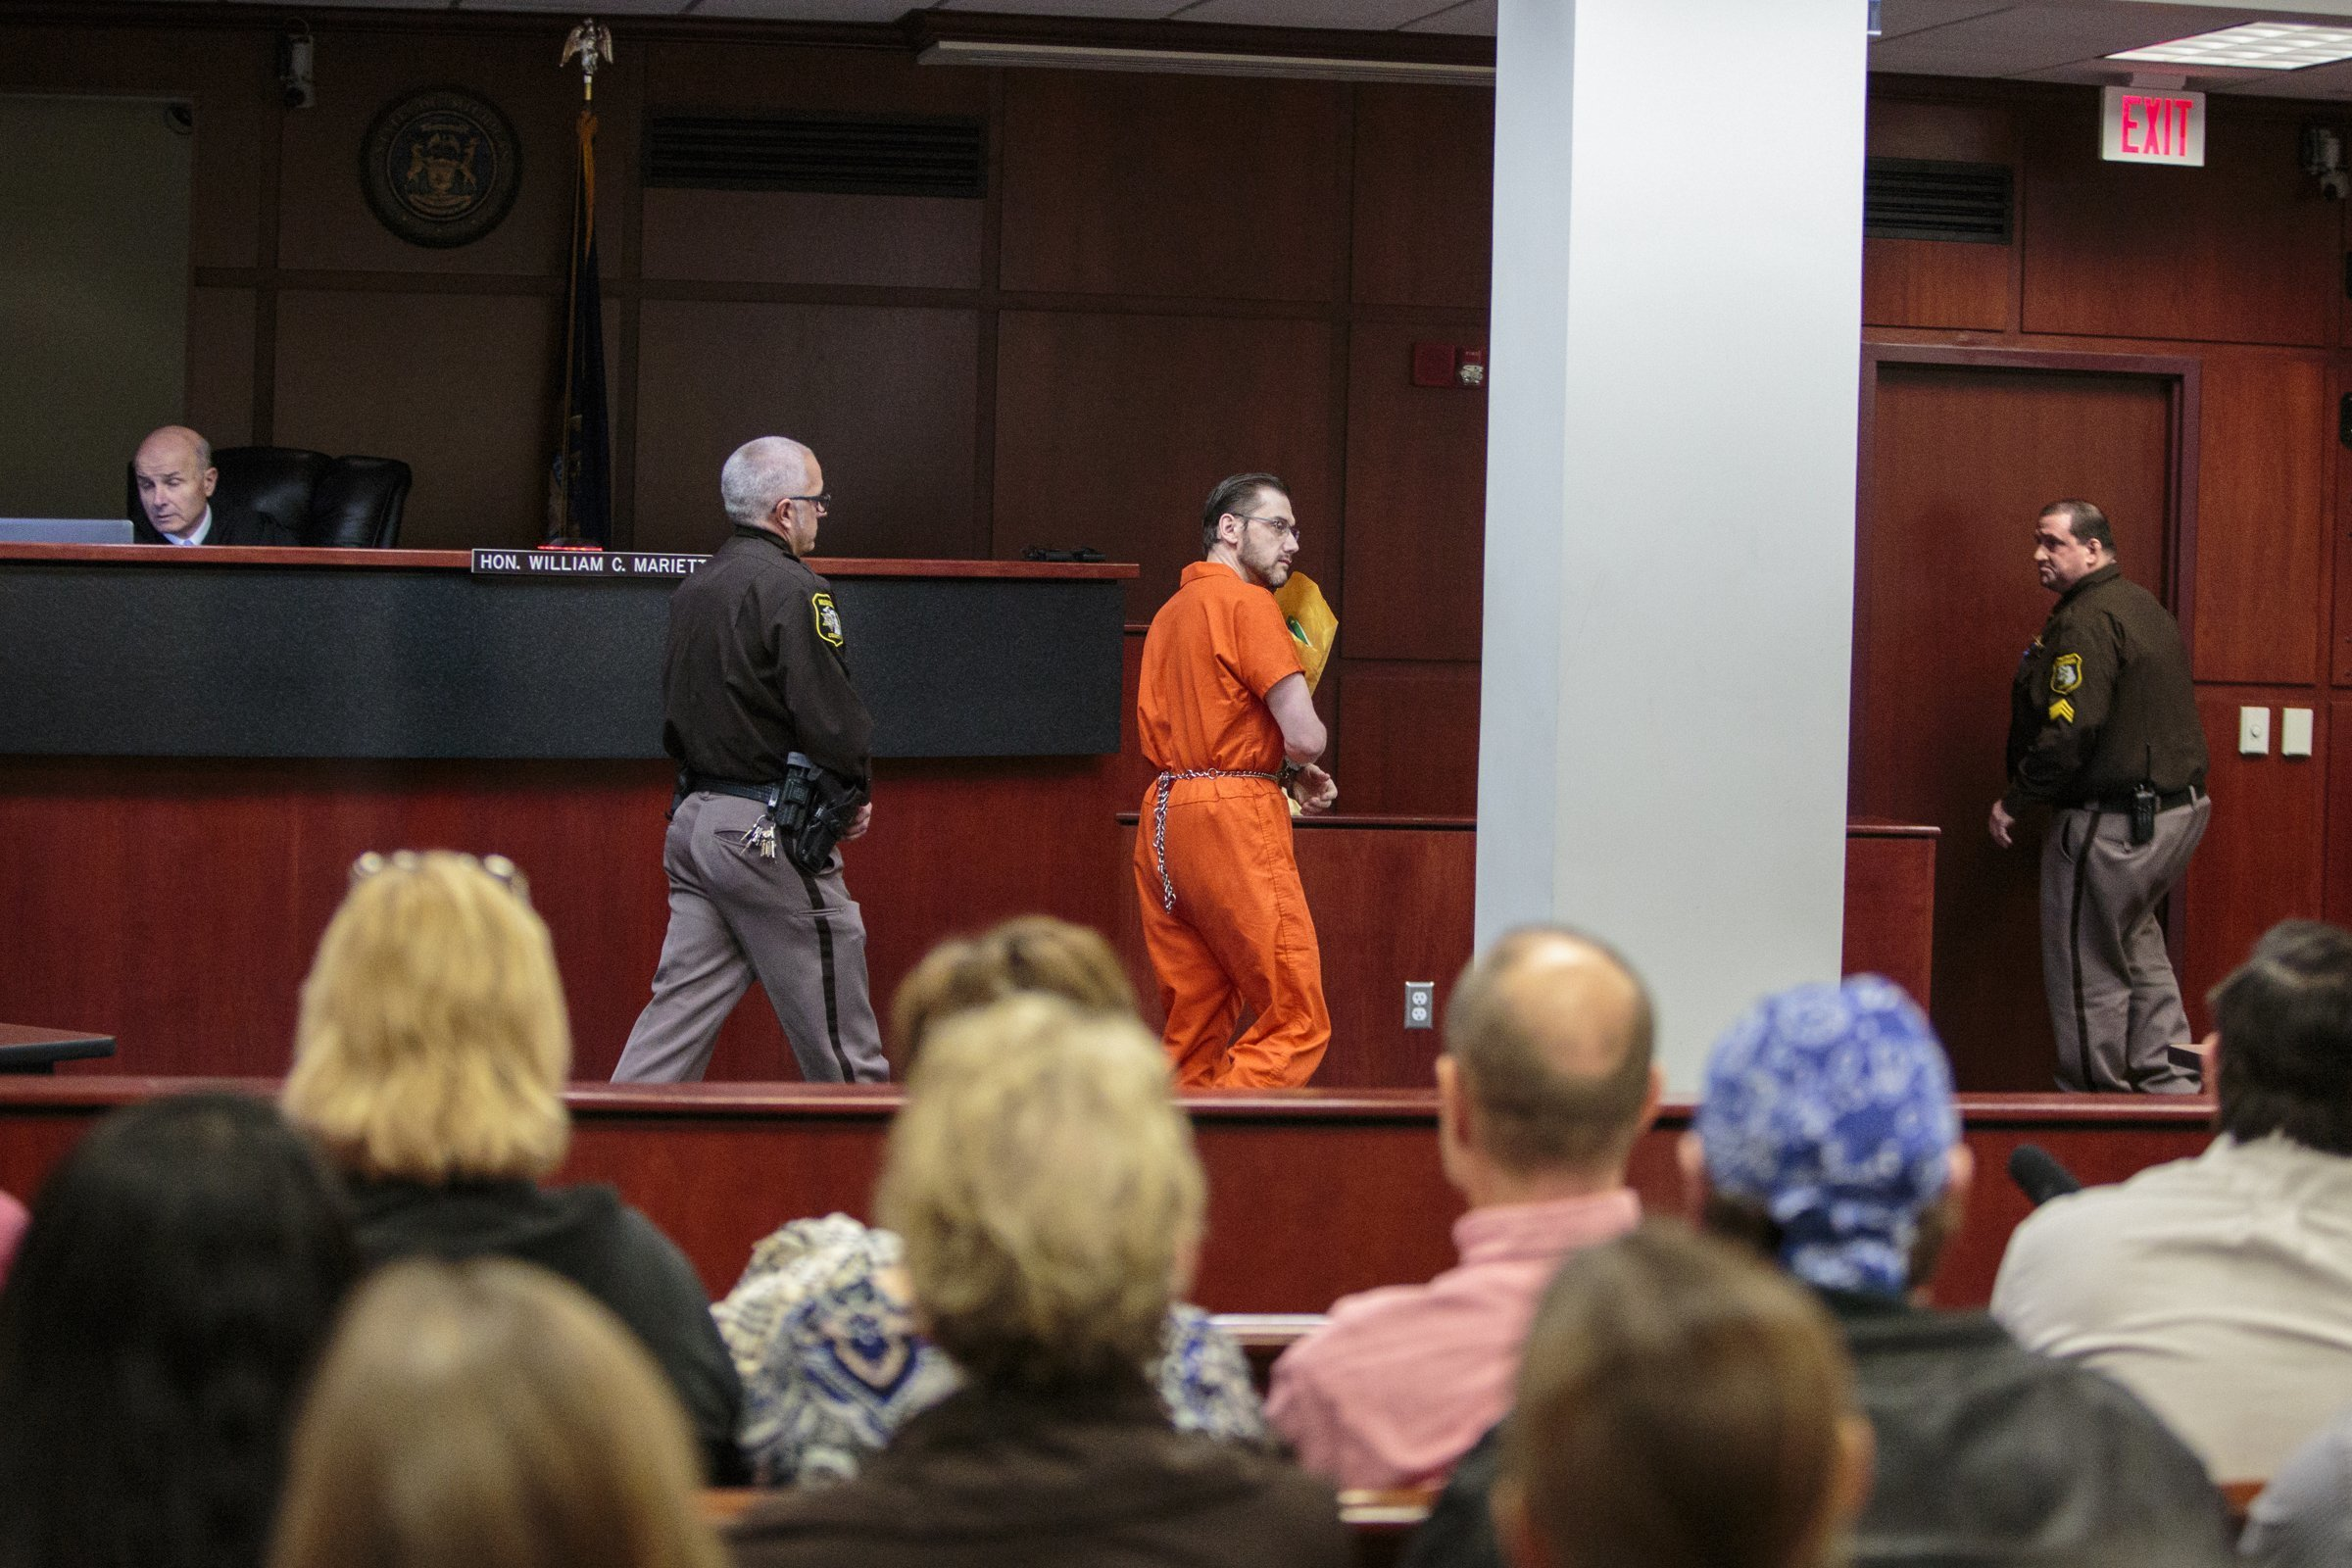 Jeffrey Willis exits the court room Monday, Dec. 18, 2017, before his sentencing in front of Judge William Marietti for the first degree murder in June 2014 of Rebekah Bletsch in Muskegon, Muskegon County Court House. Willis decided he would leave the courtroom before he was sentenced to a mandatory life sentence without chance of parole. (Joel Bissell/Muskegon Chronicle via AP)